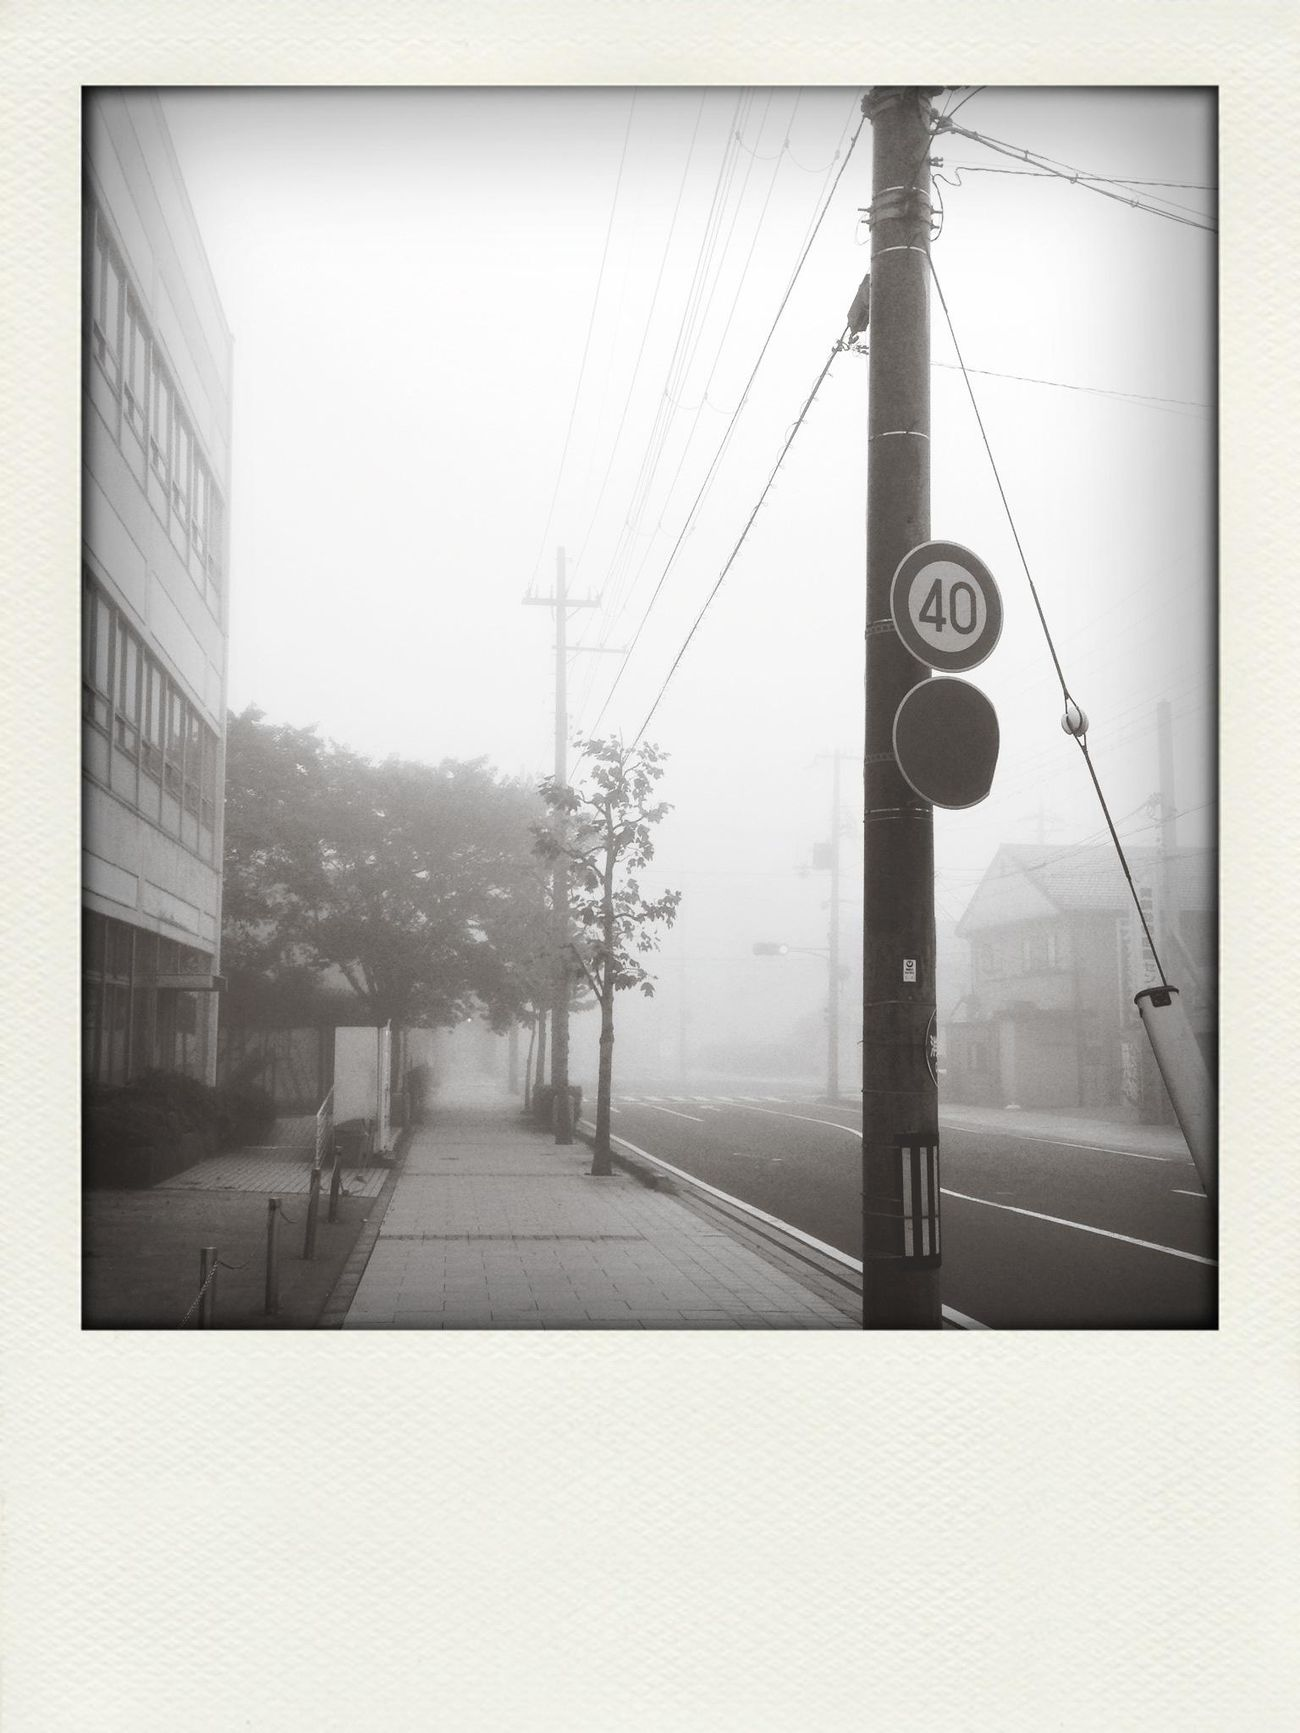 Foggy morning